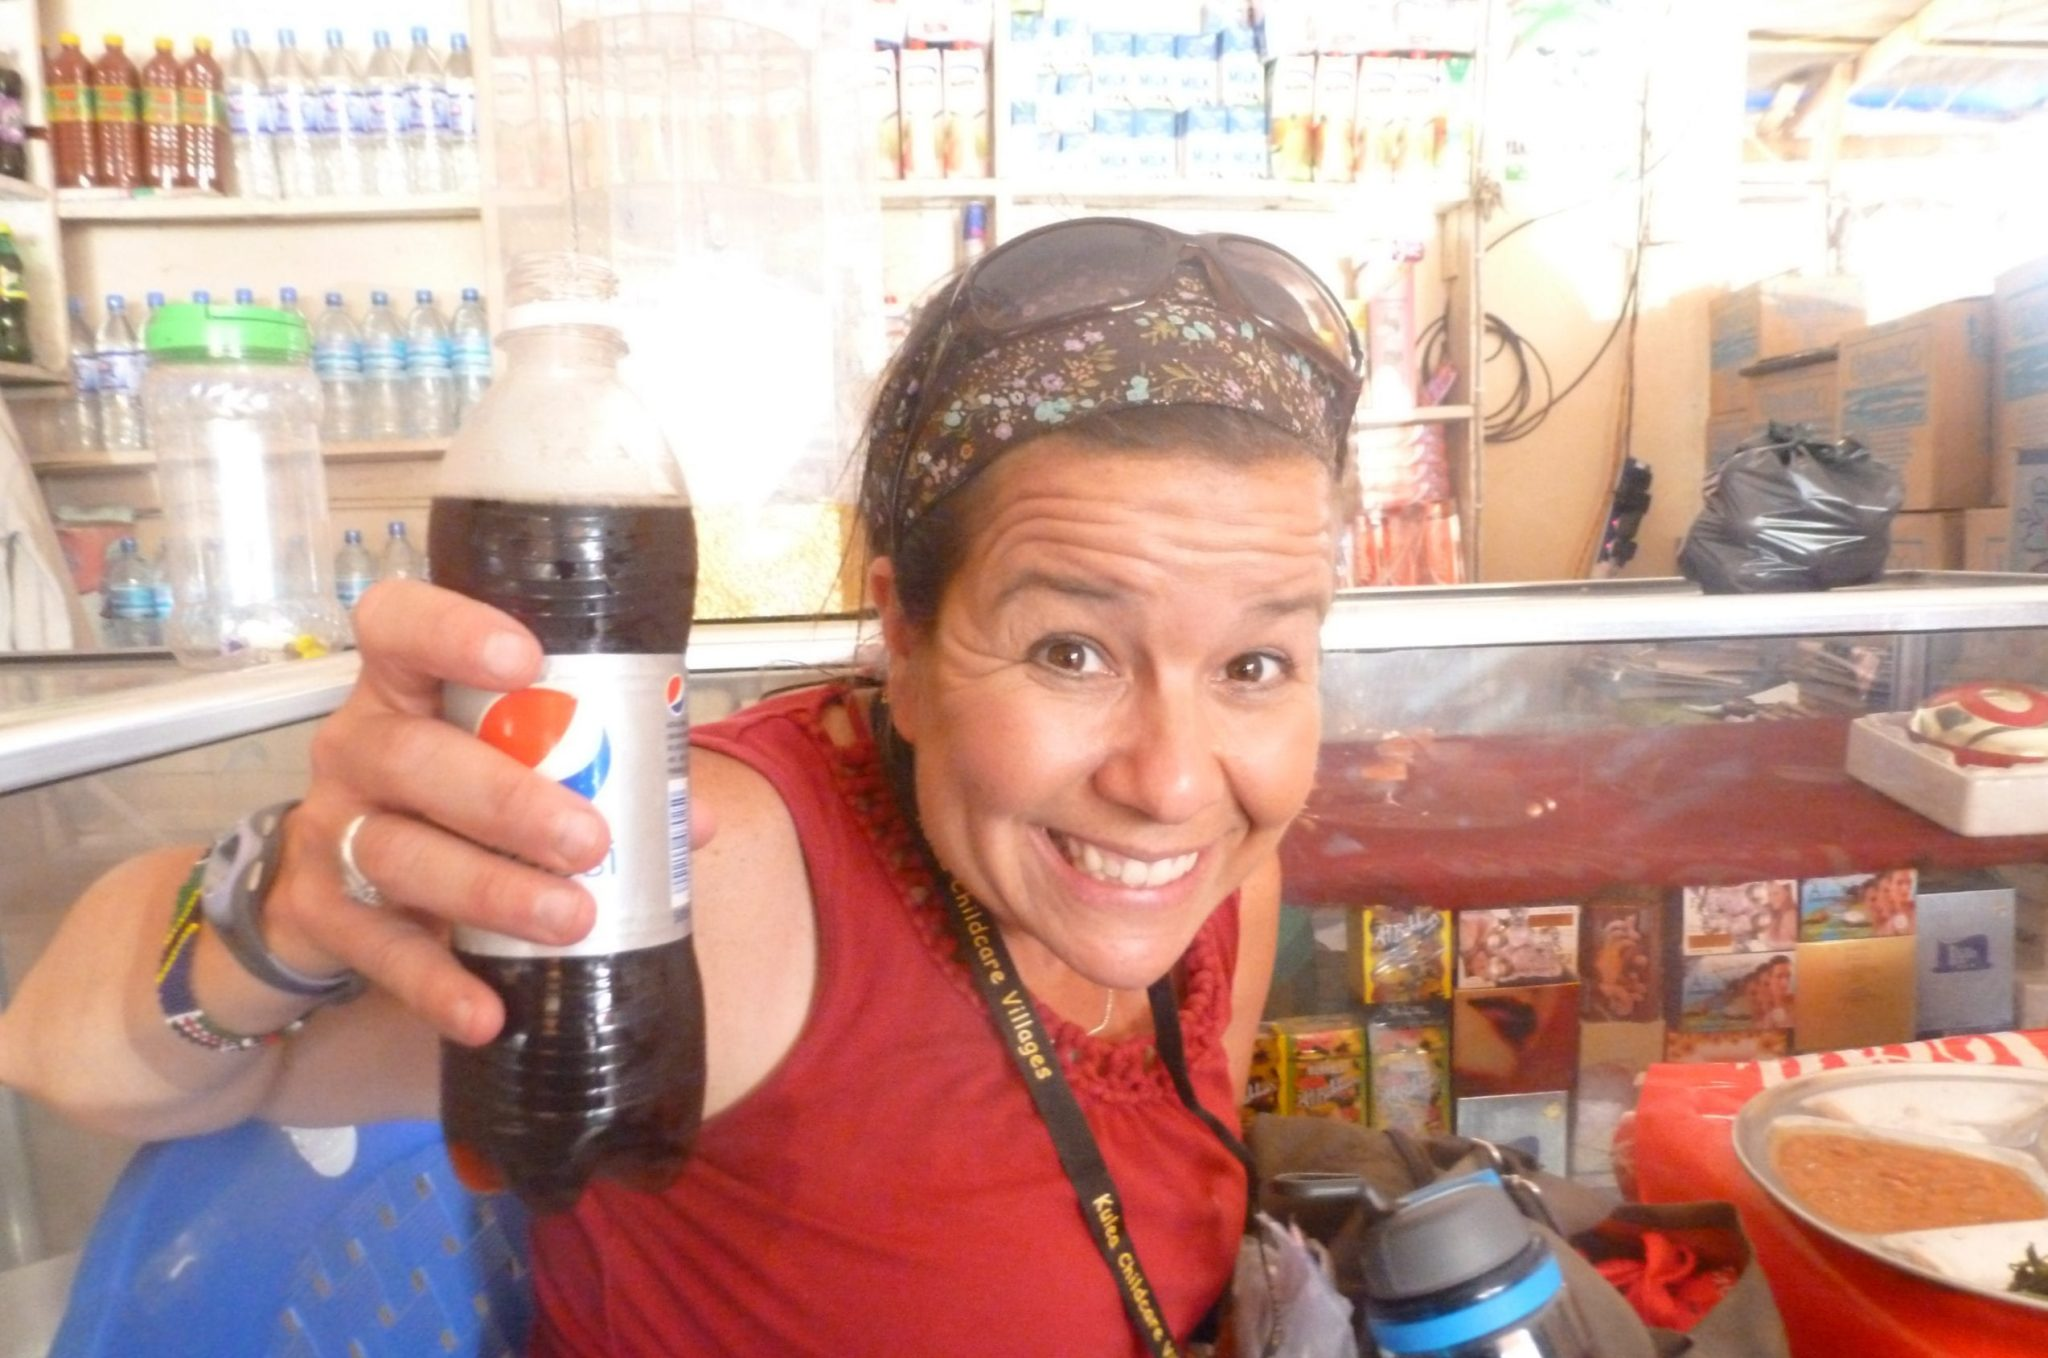 An adult woman smiling, holding a bottle of soda.